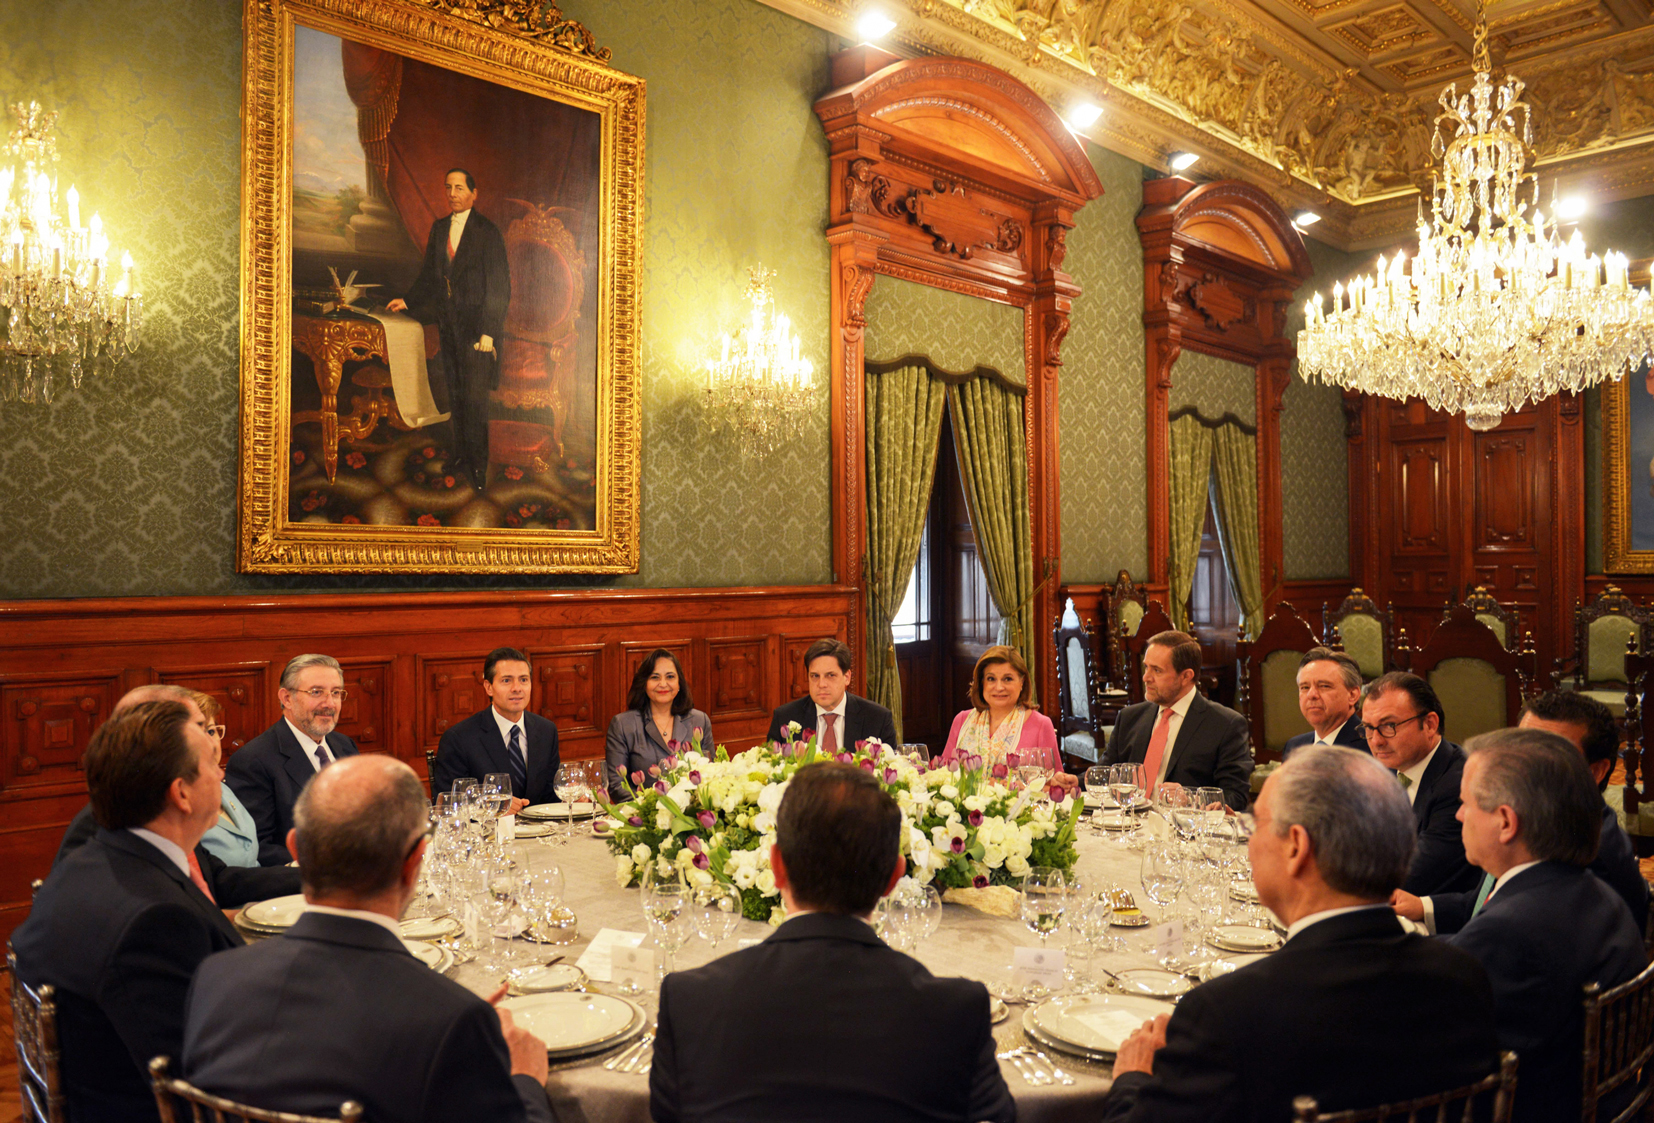 The president at a meeting with the Ministers of the Supreme Court in the Ambassadors' Hall at the National Palace.